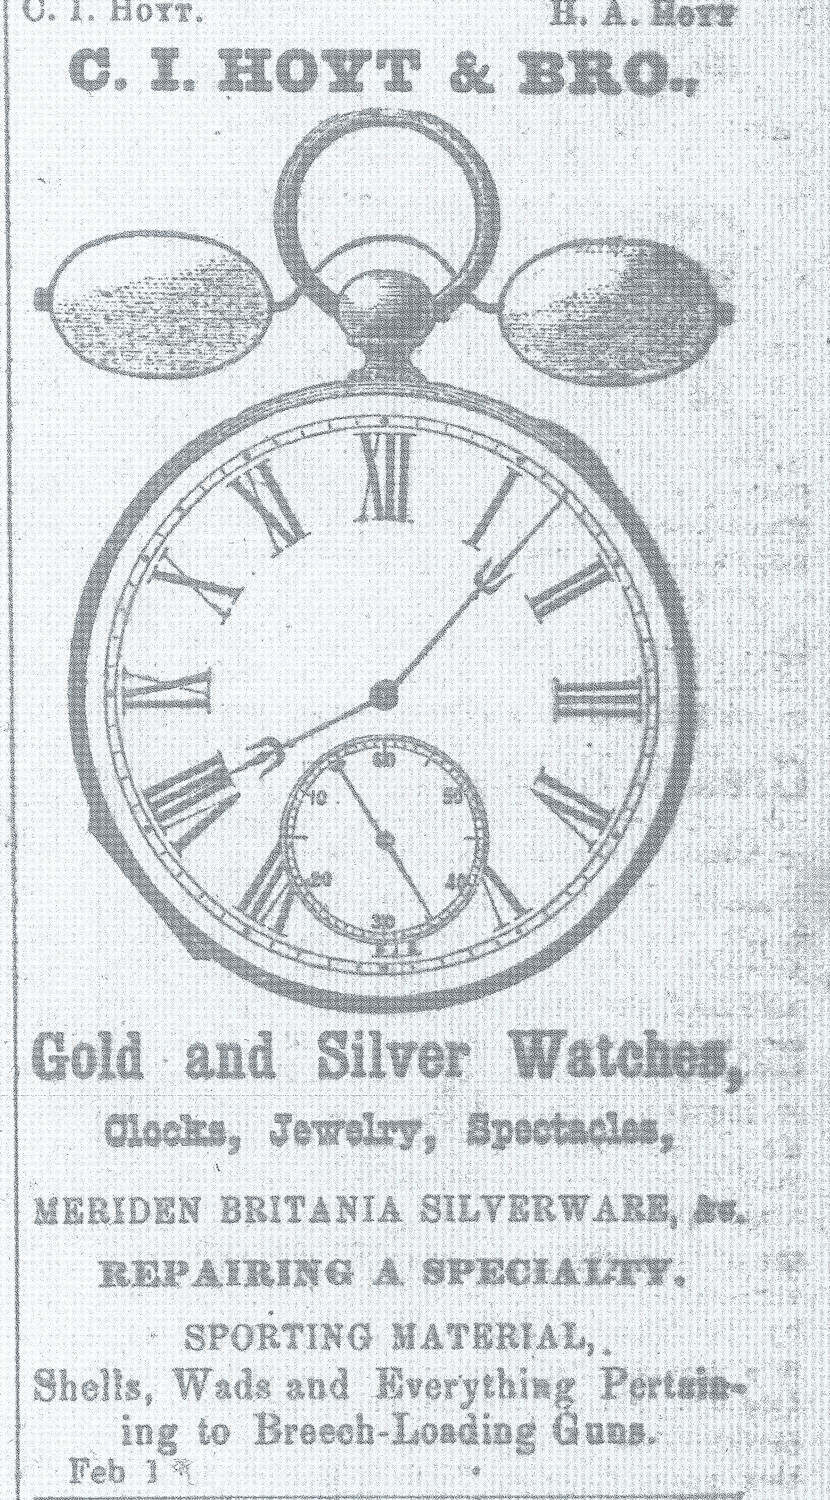 The Hoyt jewelry store, owned by H. A. Hoyt and later C. I. Hoyt, sold clocks, silverware, engraved items and cutlery, too. It was well known for watch repair.